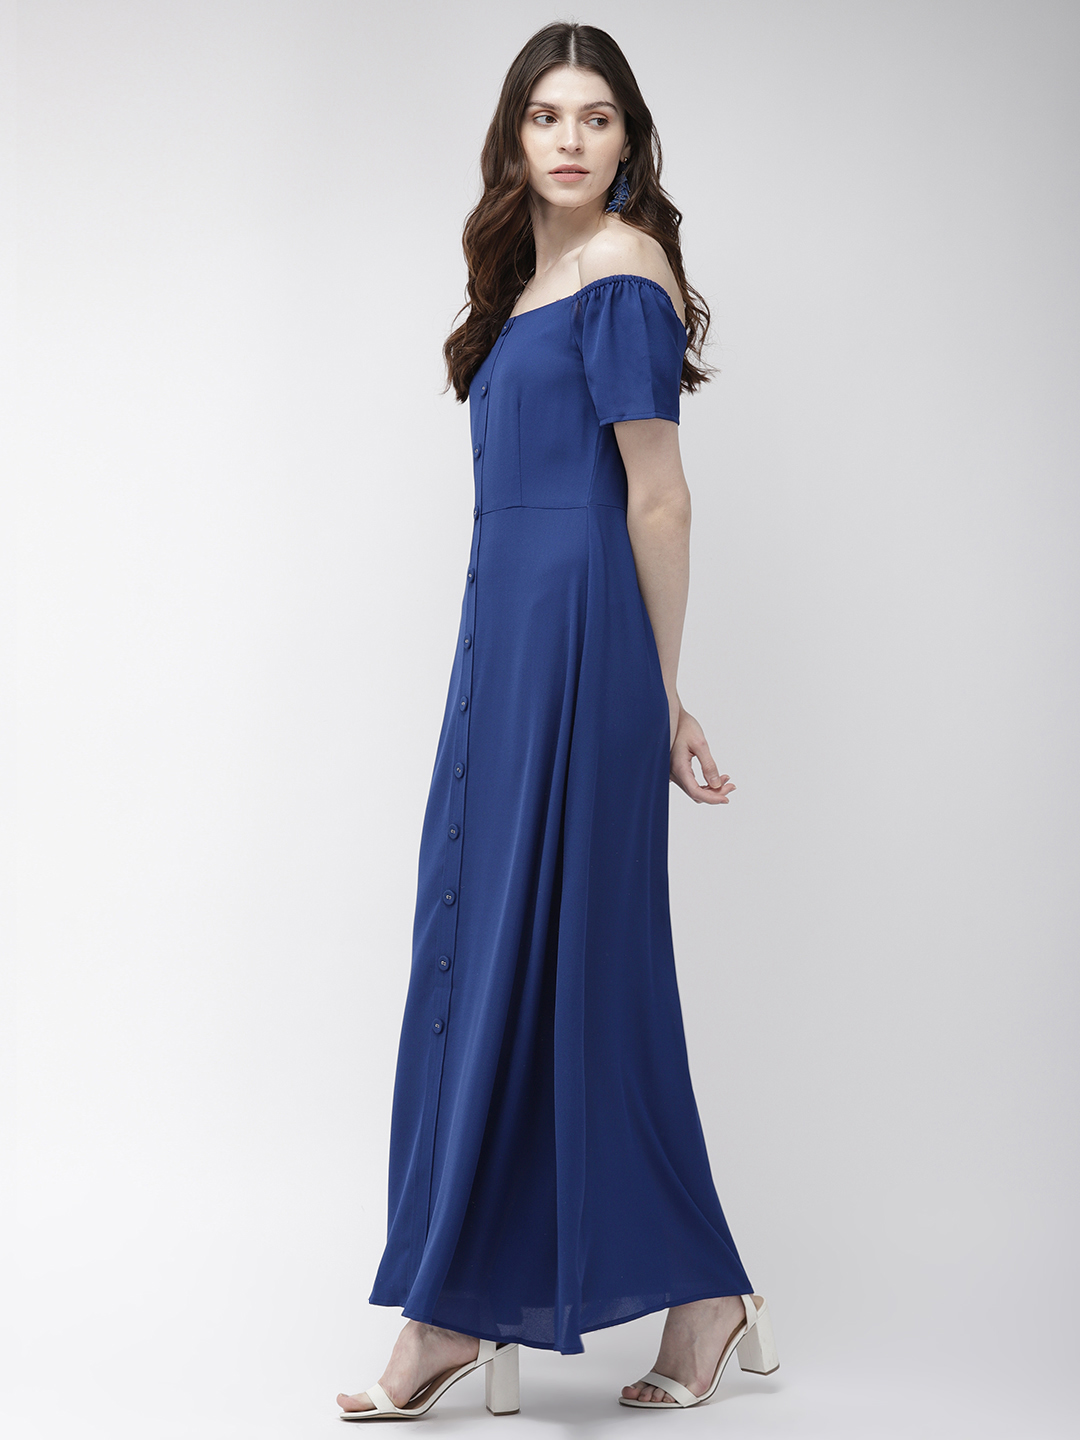 Dresses-Trendy Temptation Maxi Dress2